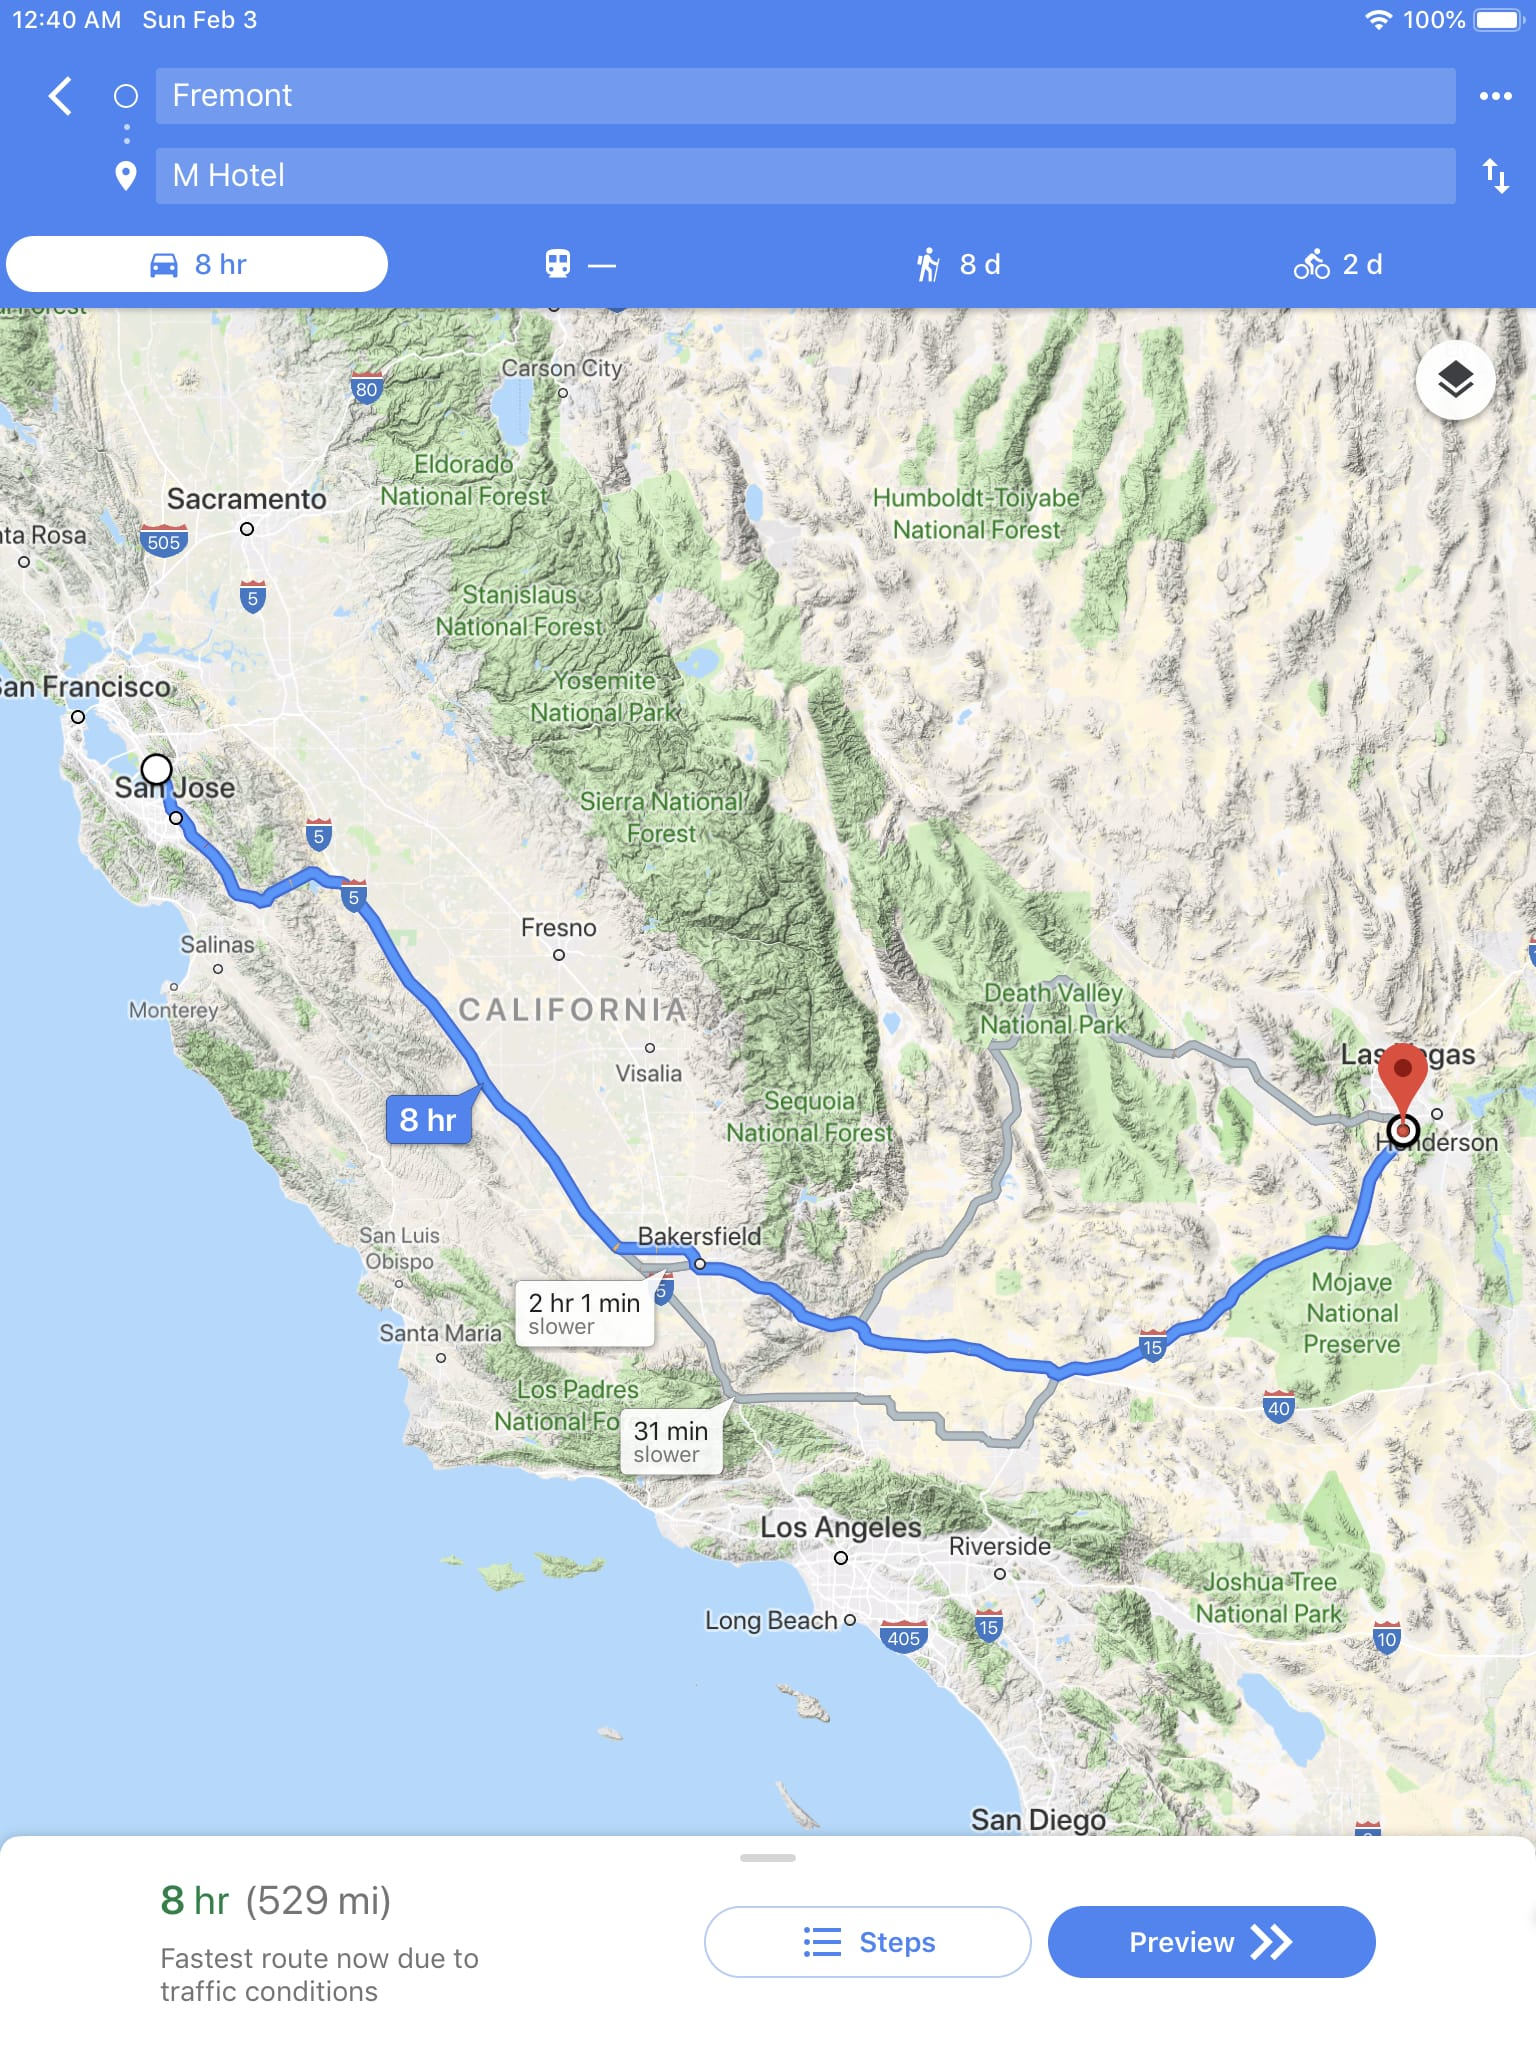 Route wmap from Fremont California to M Hotel at Las Vegas